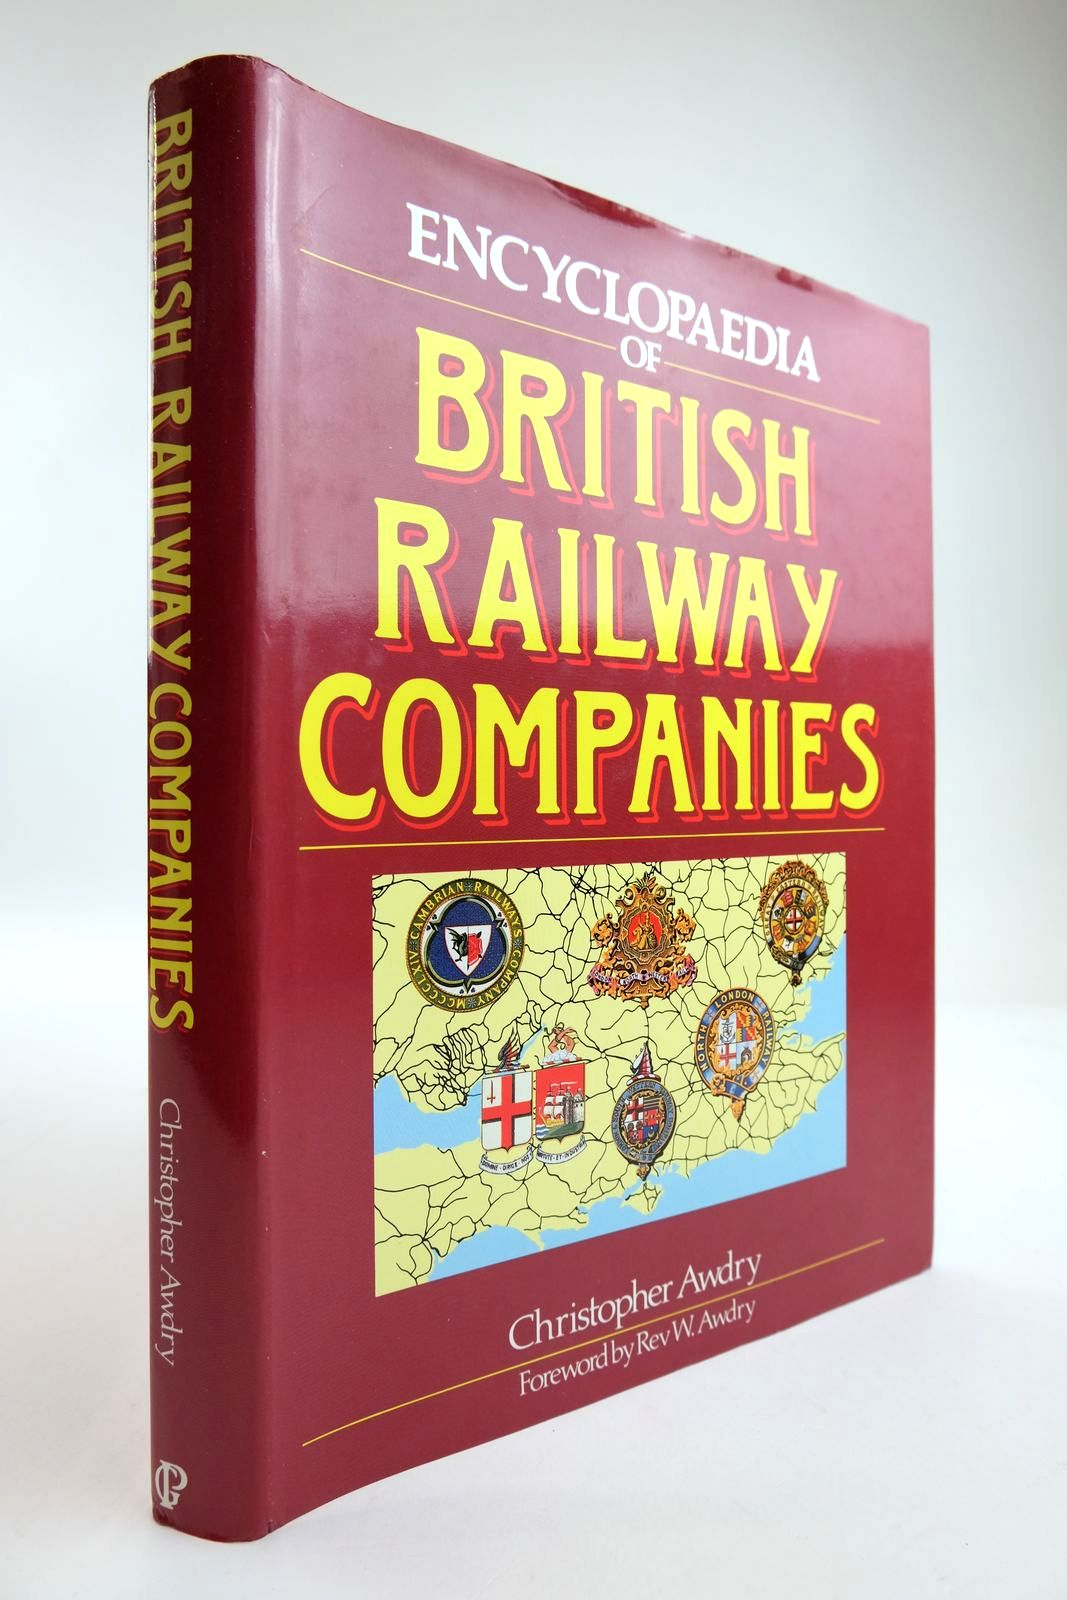 Photo of ENCYCLOPAEDIA OF BRITISH RAILWAY COMPANIES written by Awdry, Christopher Awdry, Rev. W. published by Guild Publishing (STOCK CODE: 2133846)  for sale by Stella & Rose's Books